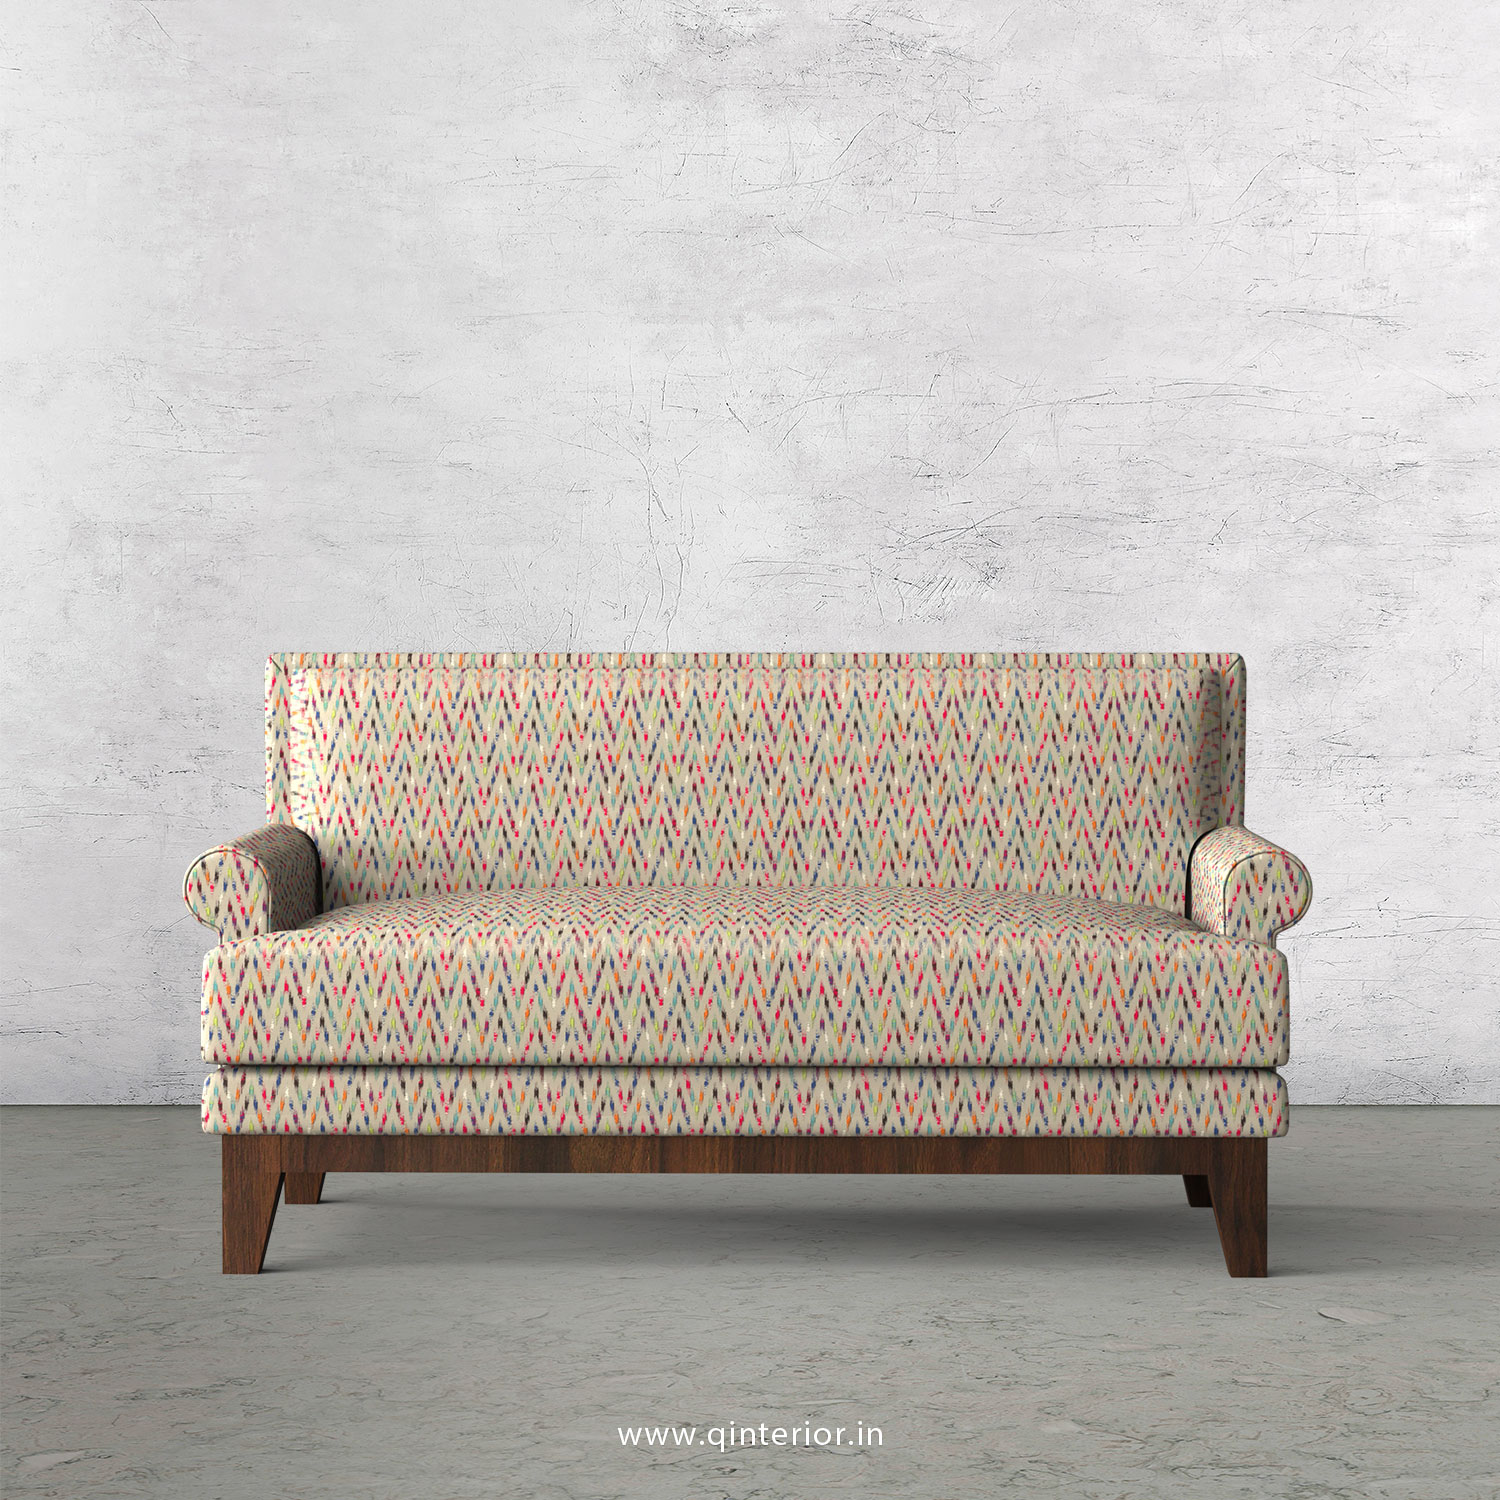 Aviana 2 Seater Sofa in Bargello Fabric - SFA001 BG10